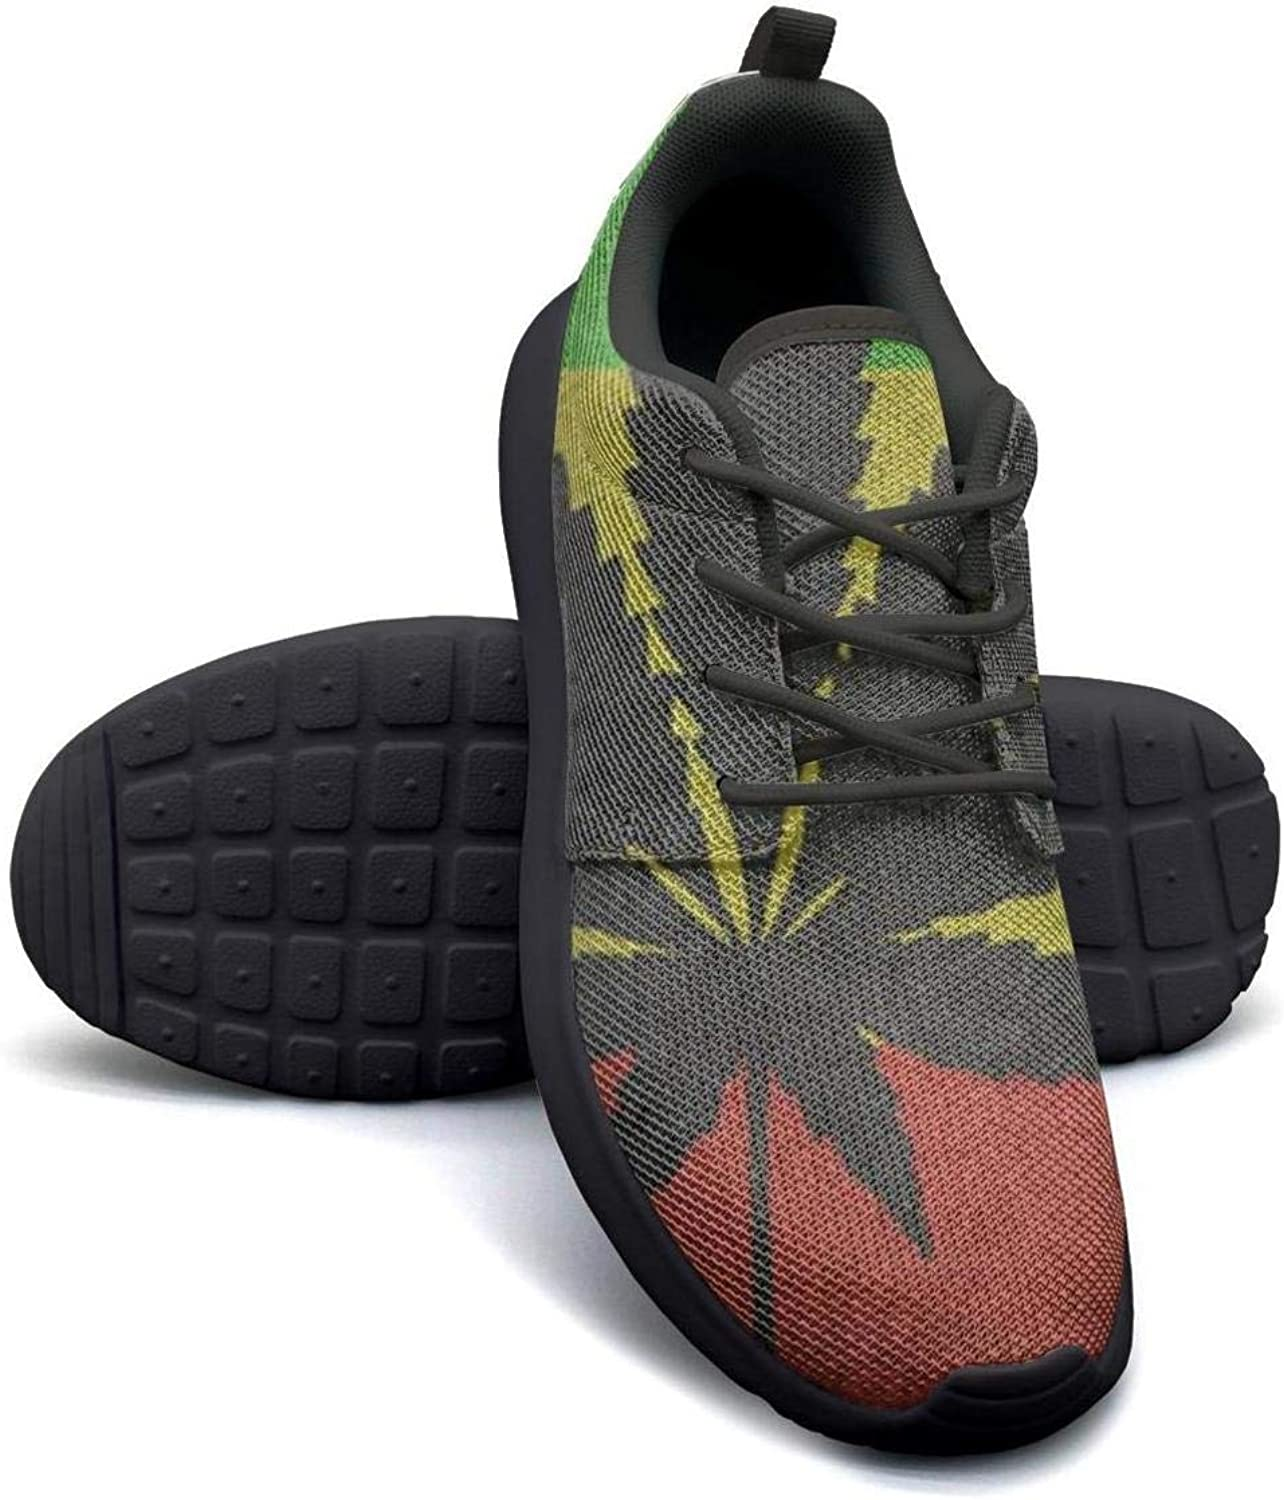 Gjsonmv Flag of Bolivia Marijuana Weed mesh Lightweight shoes for Women Fashion Sports Athletic Sneakers shoes